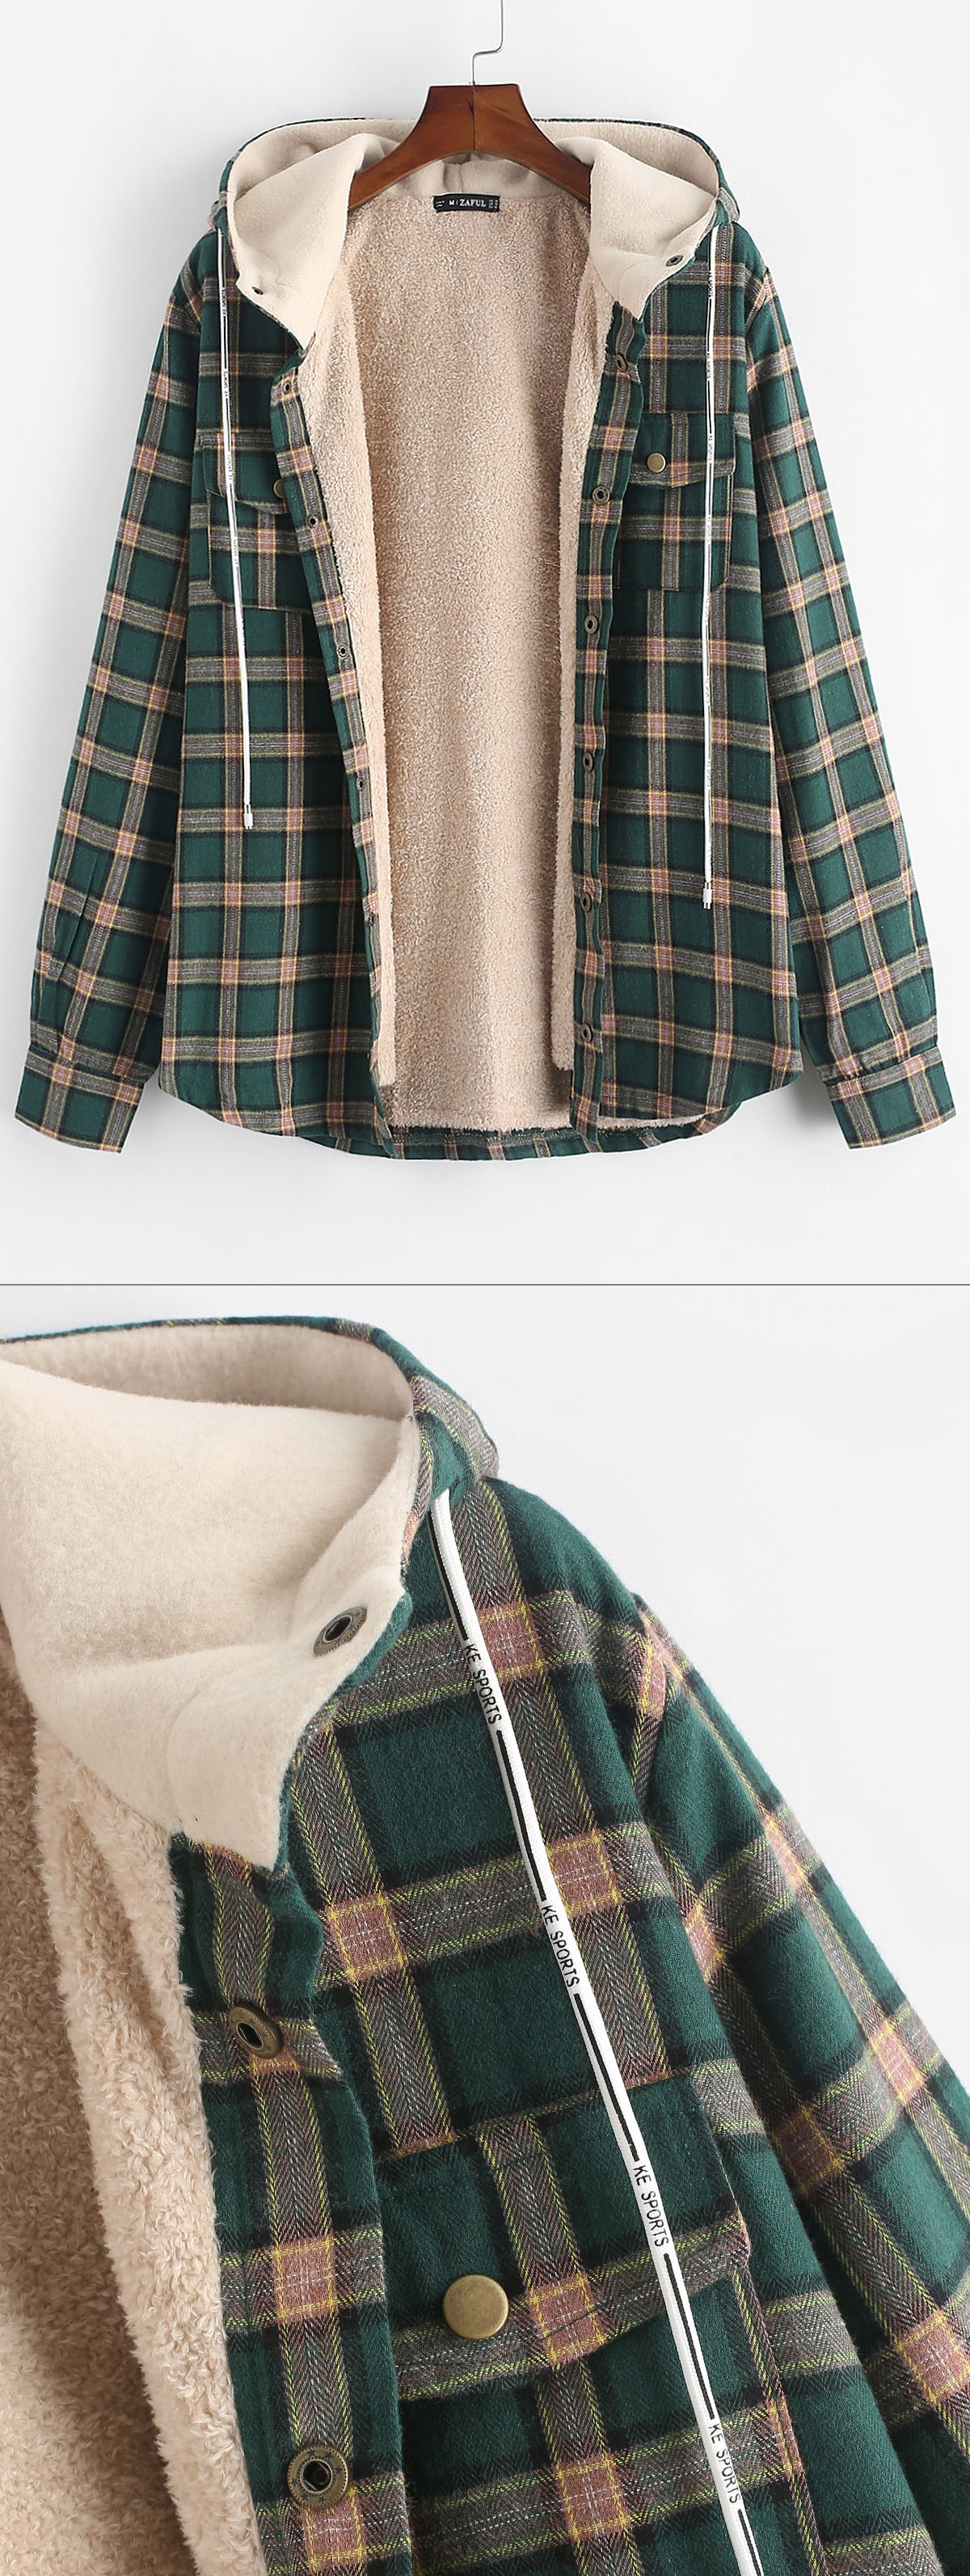 Plaid Chest Pocket Fleece Drawstring Hooded Jacket Clothes Winter Sweater Outfits Slytherin Clothes [ 3186 x 1200 Pixel ]